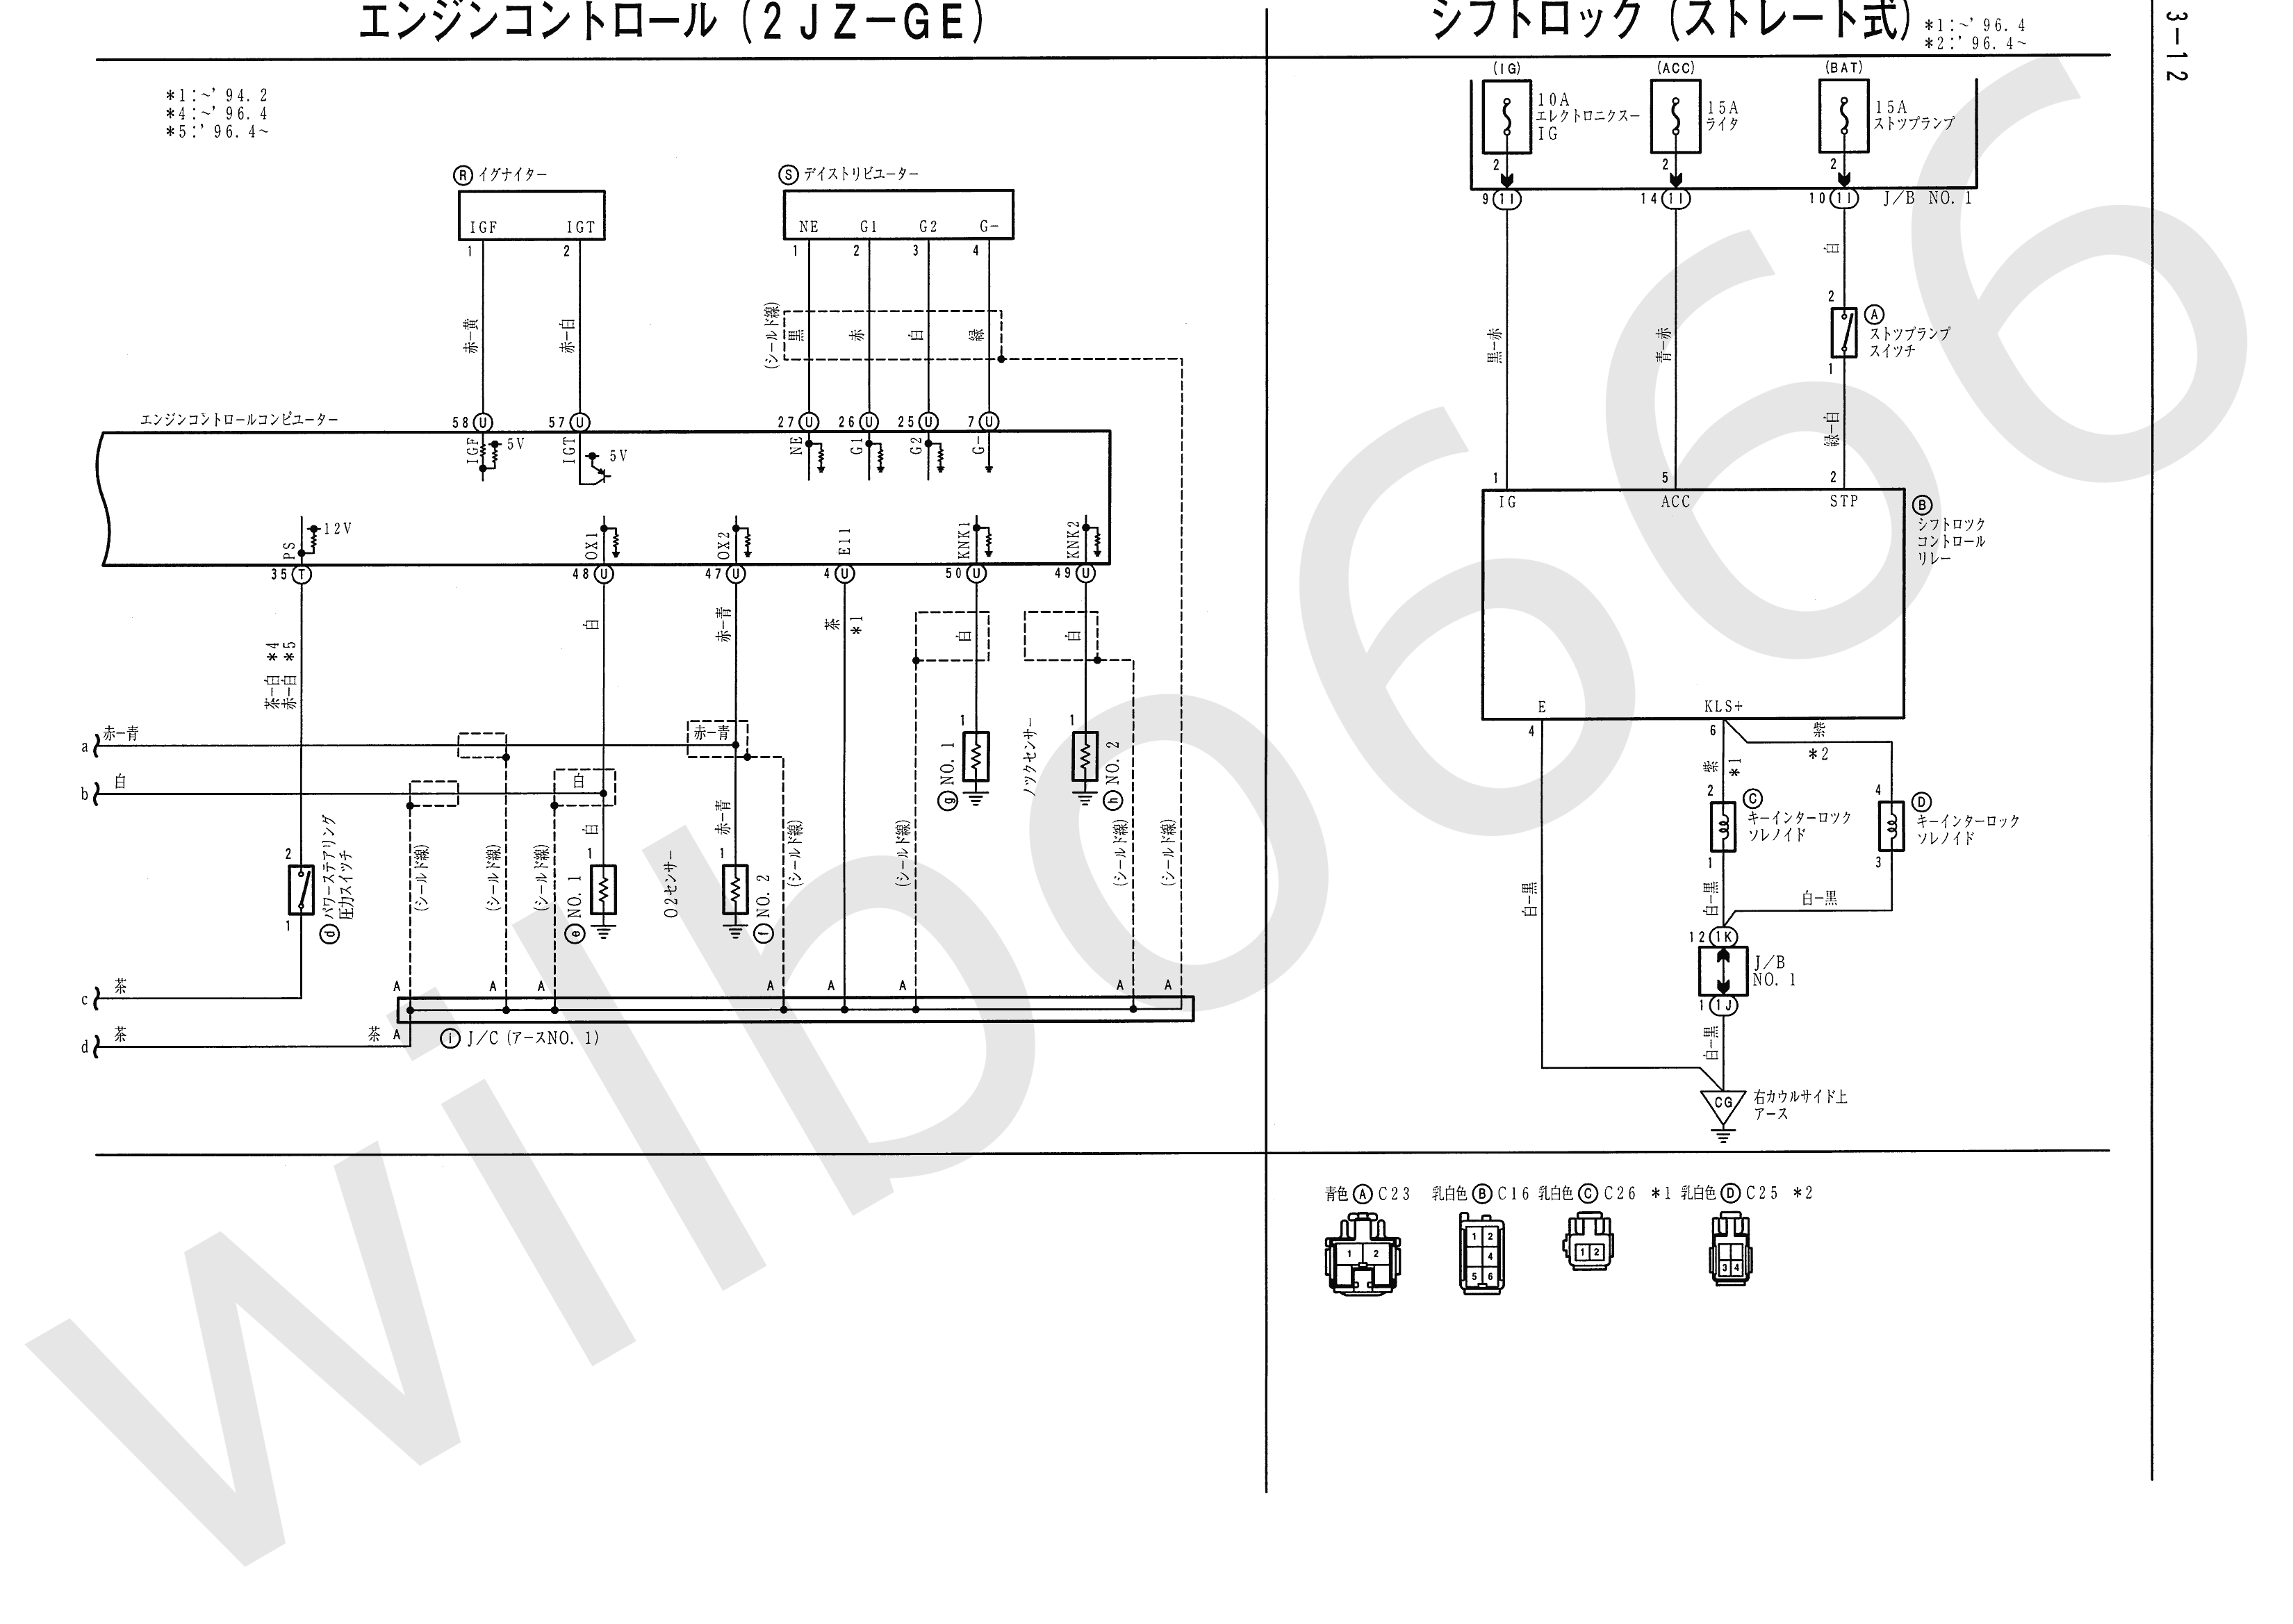 2jz vvt i engine wiring diagram wiring library vvt how it works 2jz vvt i engine wiring diagram